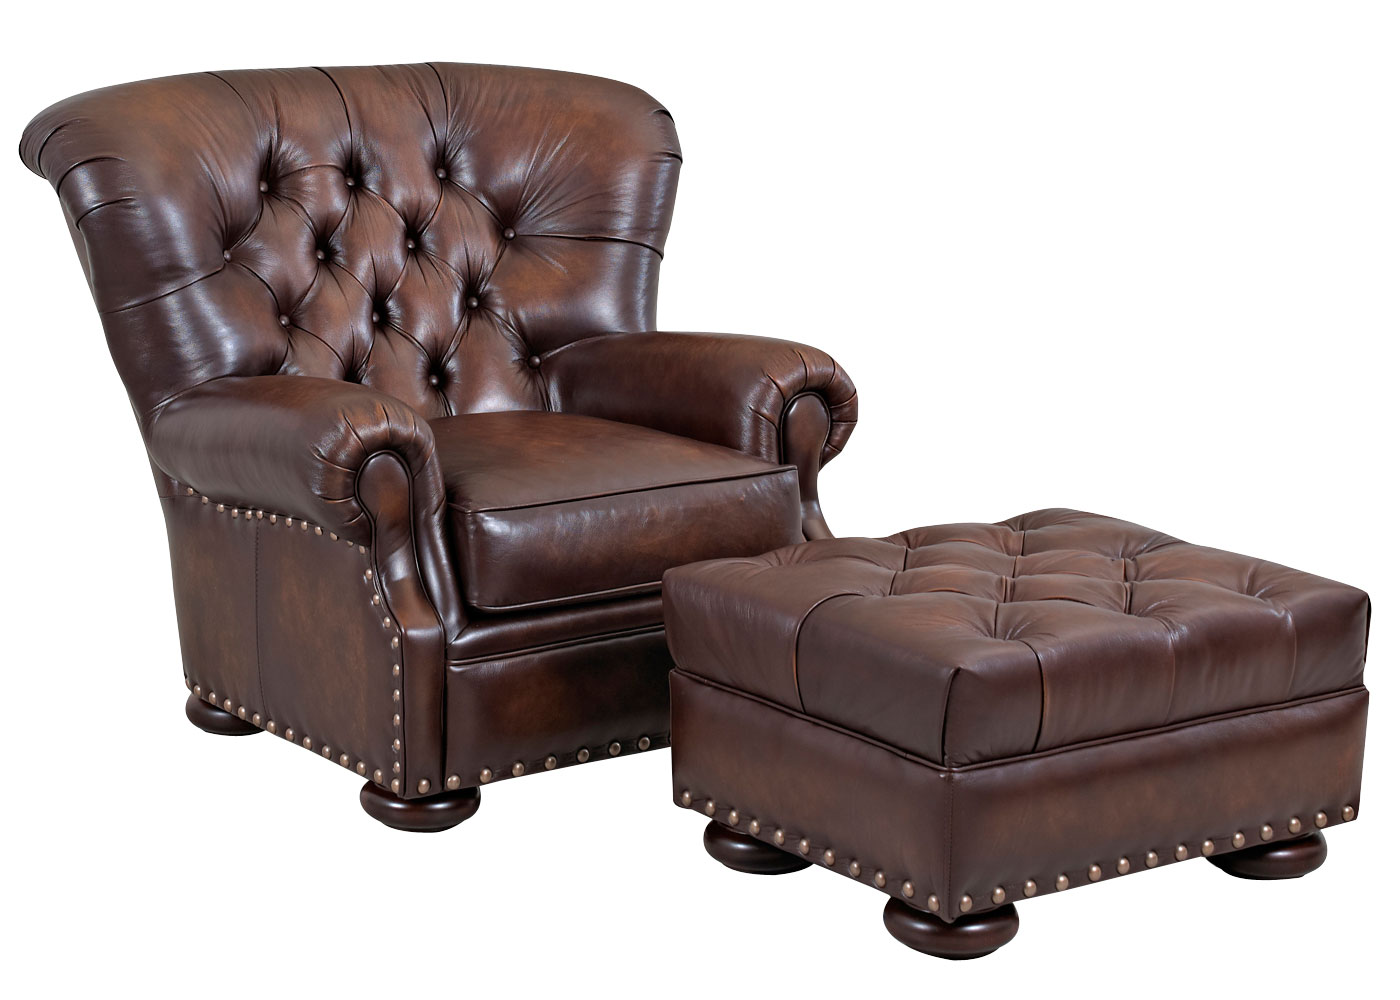 Club Chair Leather Large Tufted Back Leather Club Chair Club Furniture